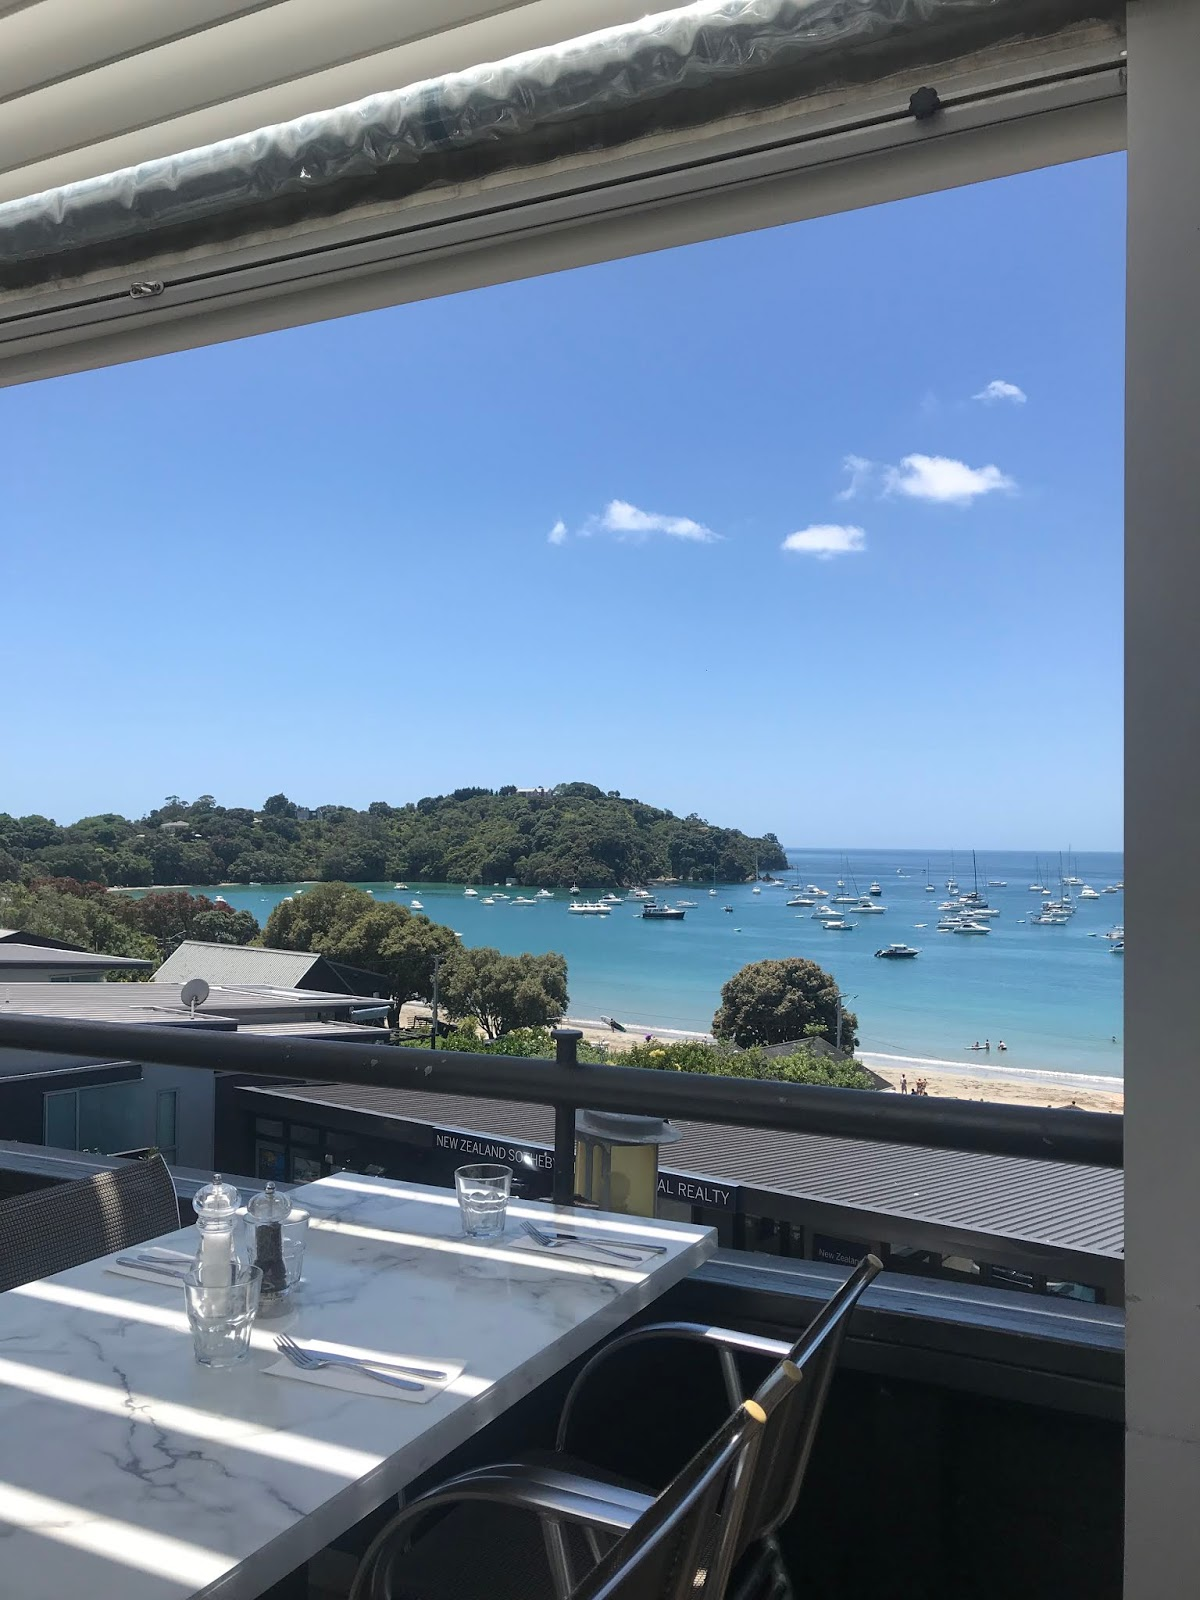 View from our restaurant in Waiheke Island